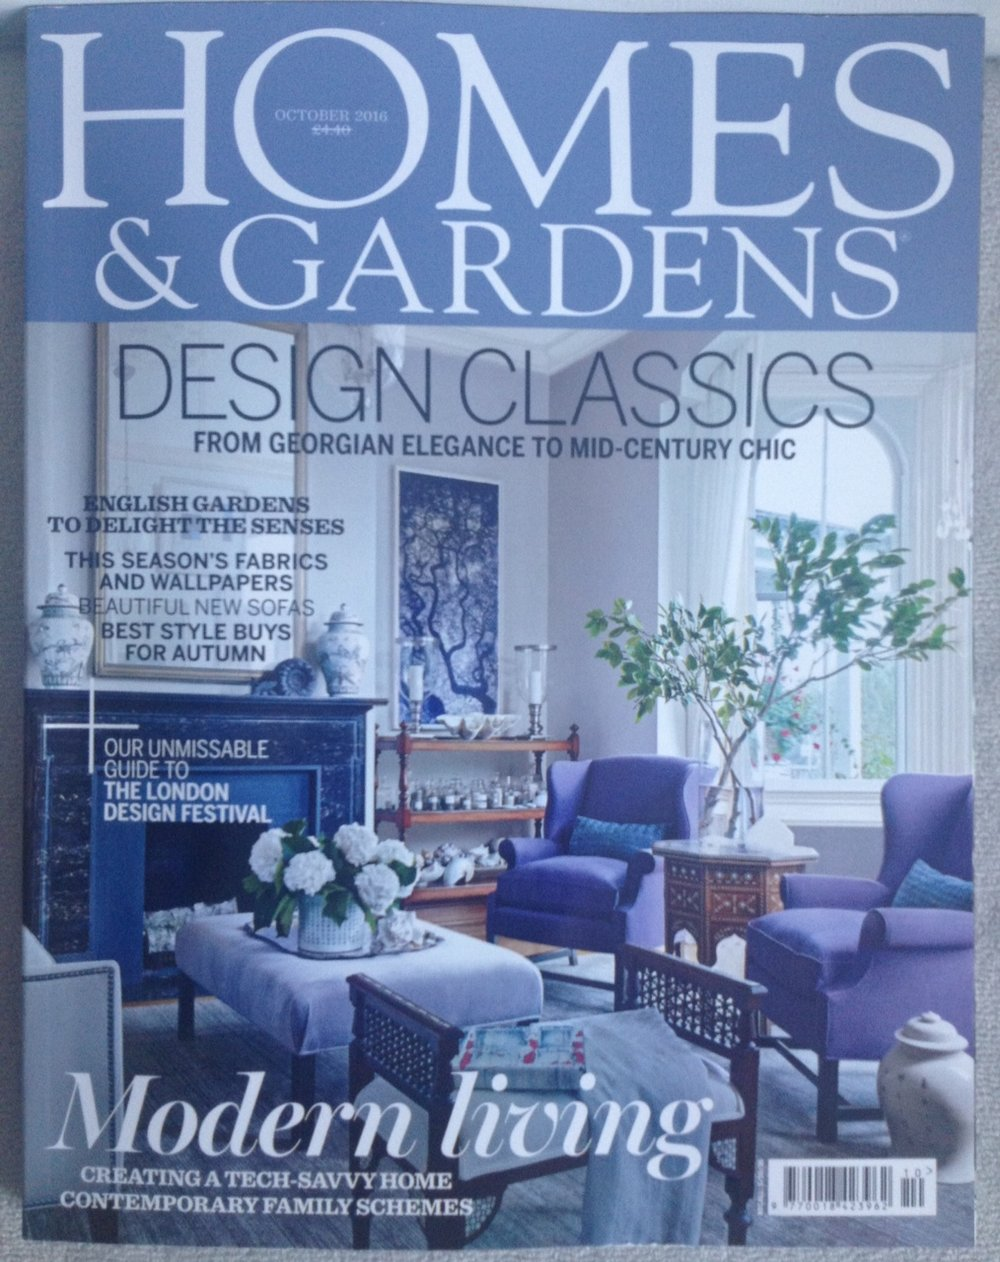 00 15 Homes & Gardens Oct front cover.JPG